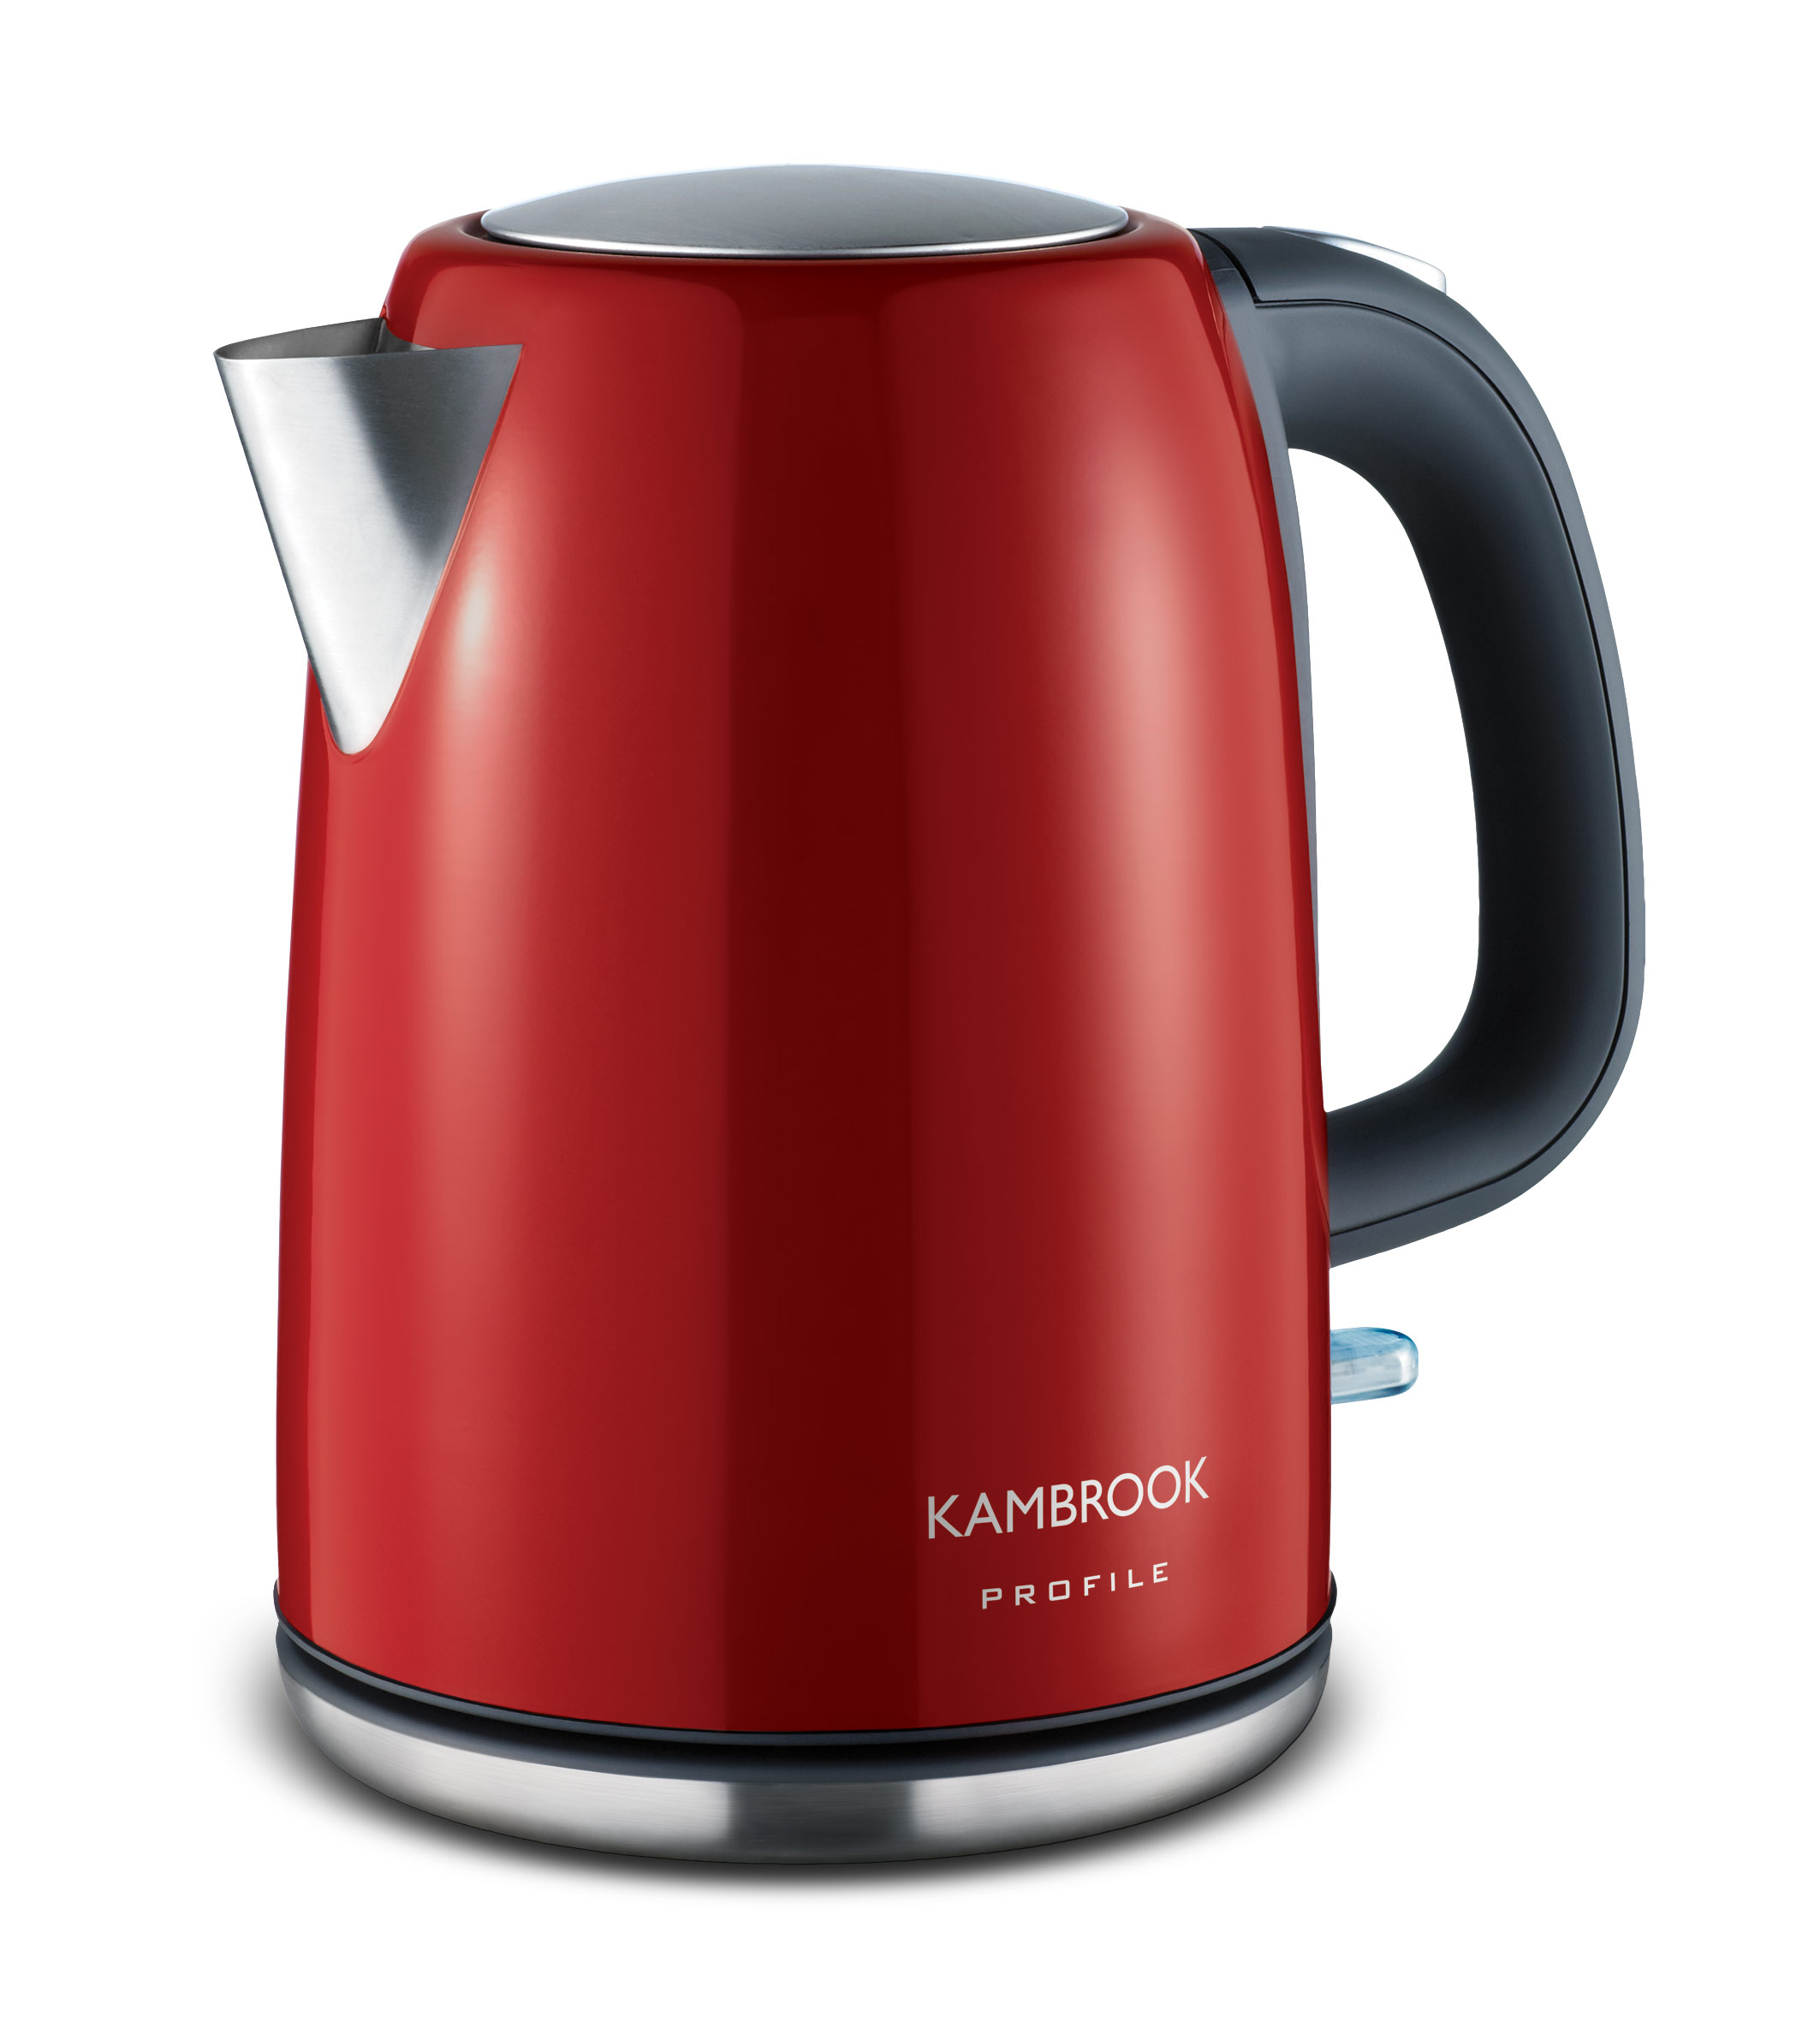 Uncategorized Big W Kitchen Appliances kettles home big w kambrook profile stainless steel kettle red 1 7l ksk220r